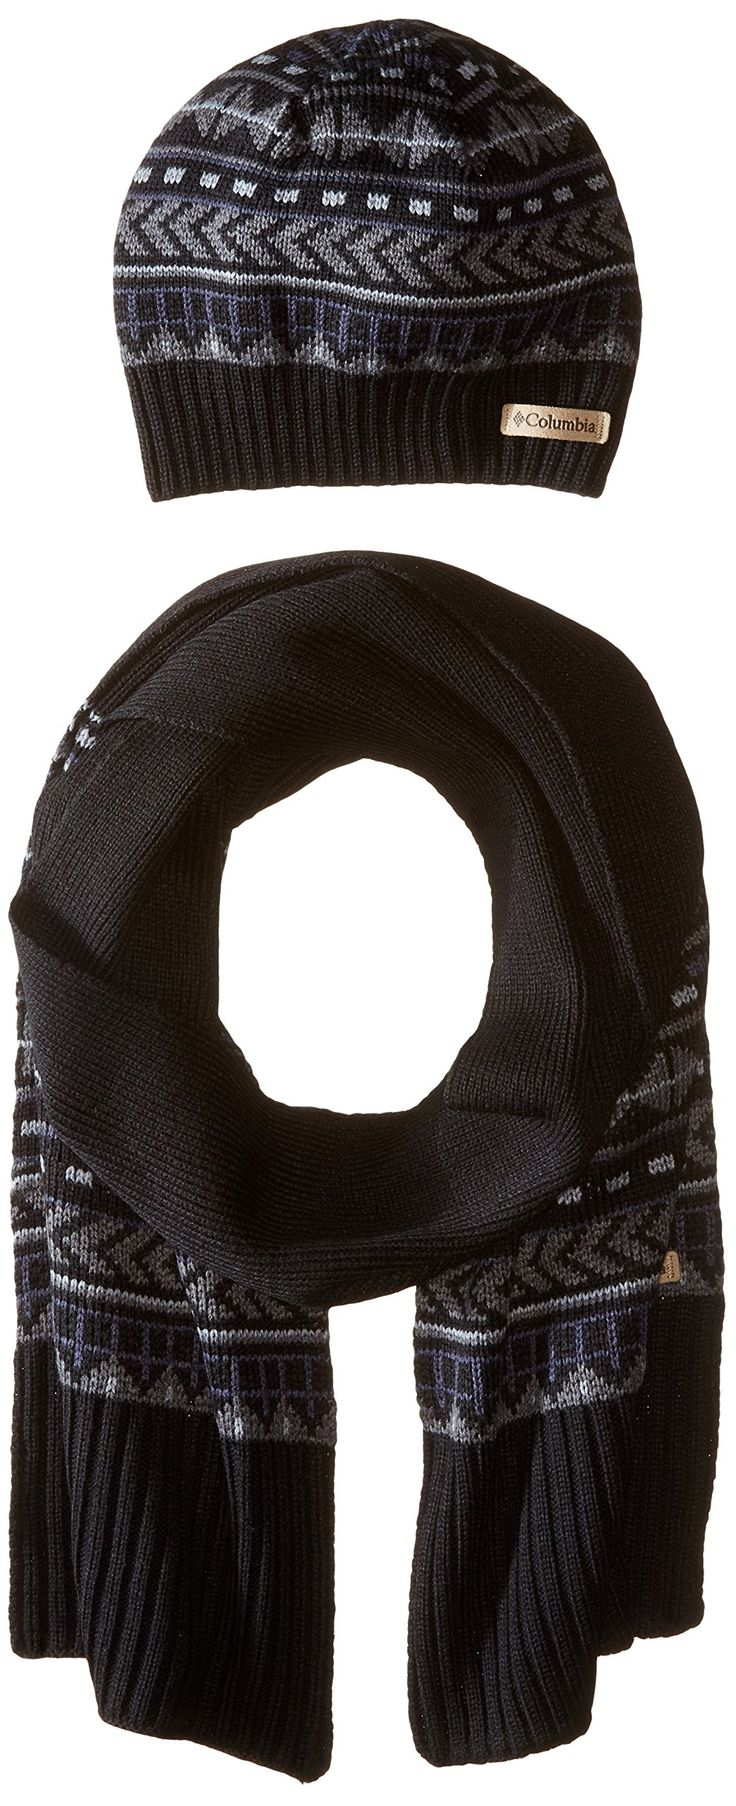 Columbia Women's Winter Worn Hat and Scarf Set, Black, One Size